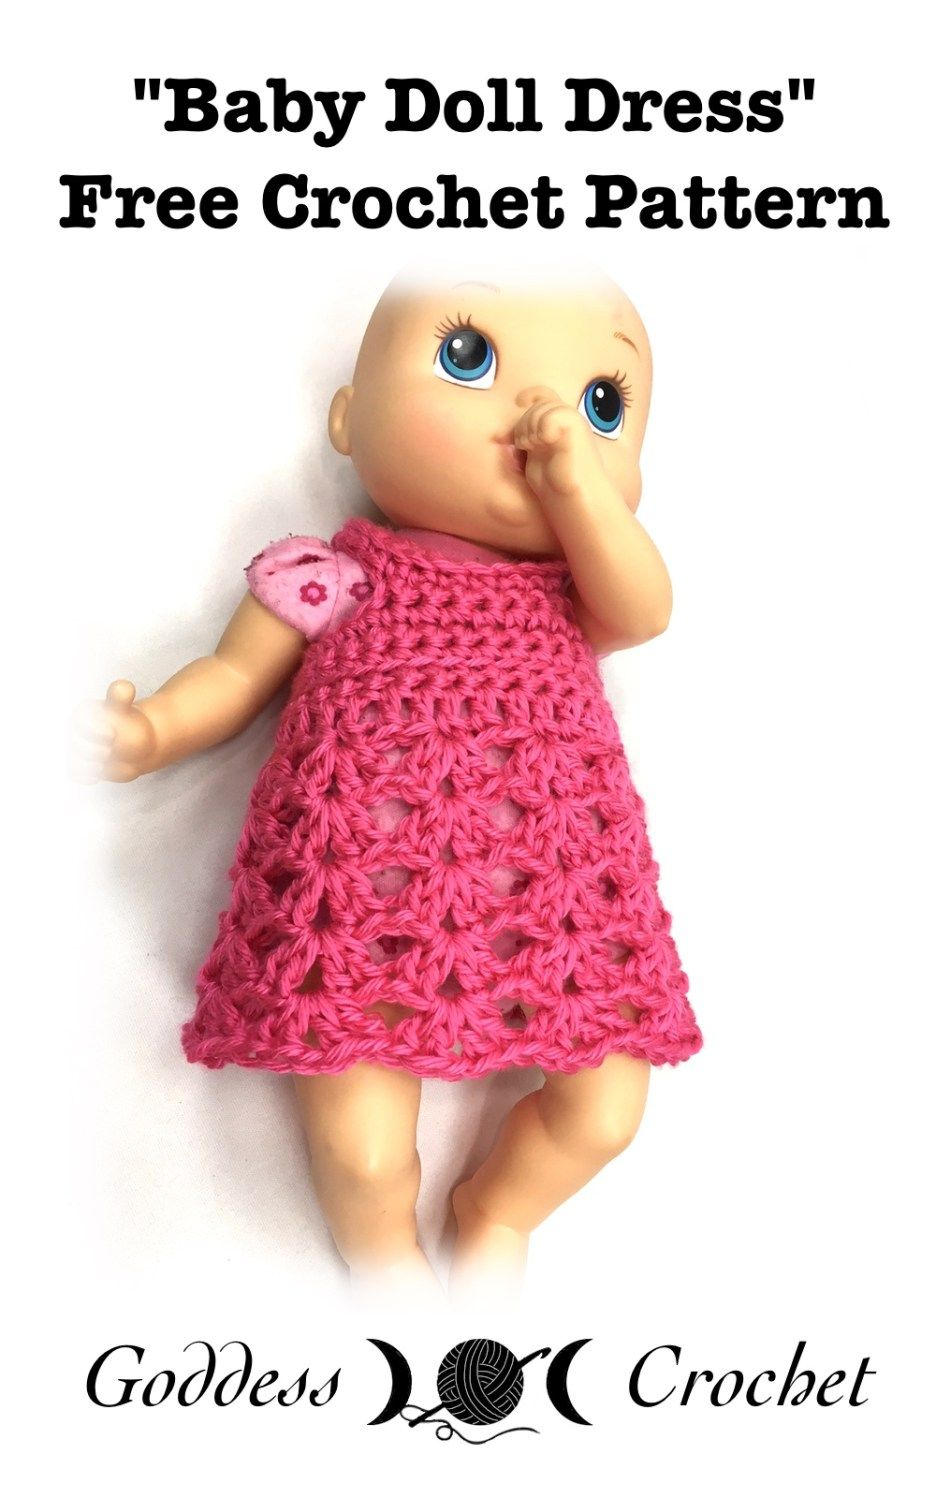 Baby Doll Dress - Free Crochet Pattern | crochet | Pinterest ...